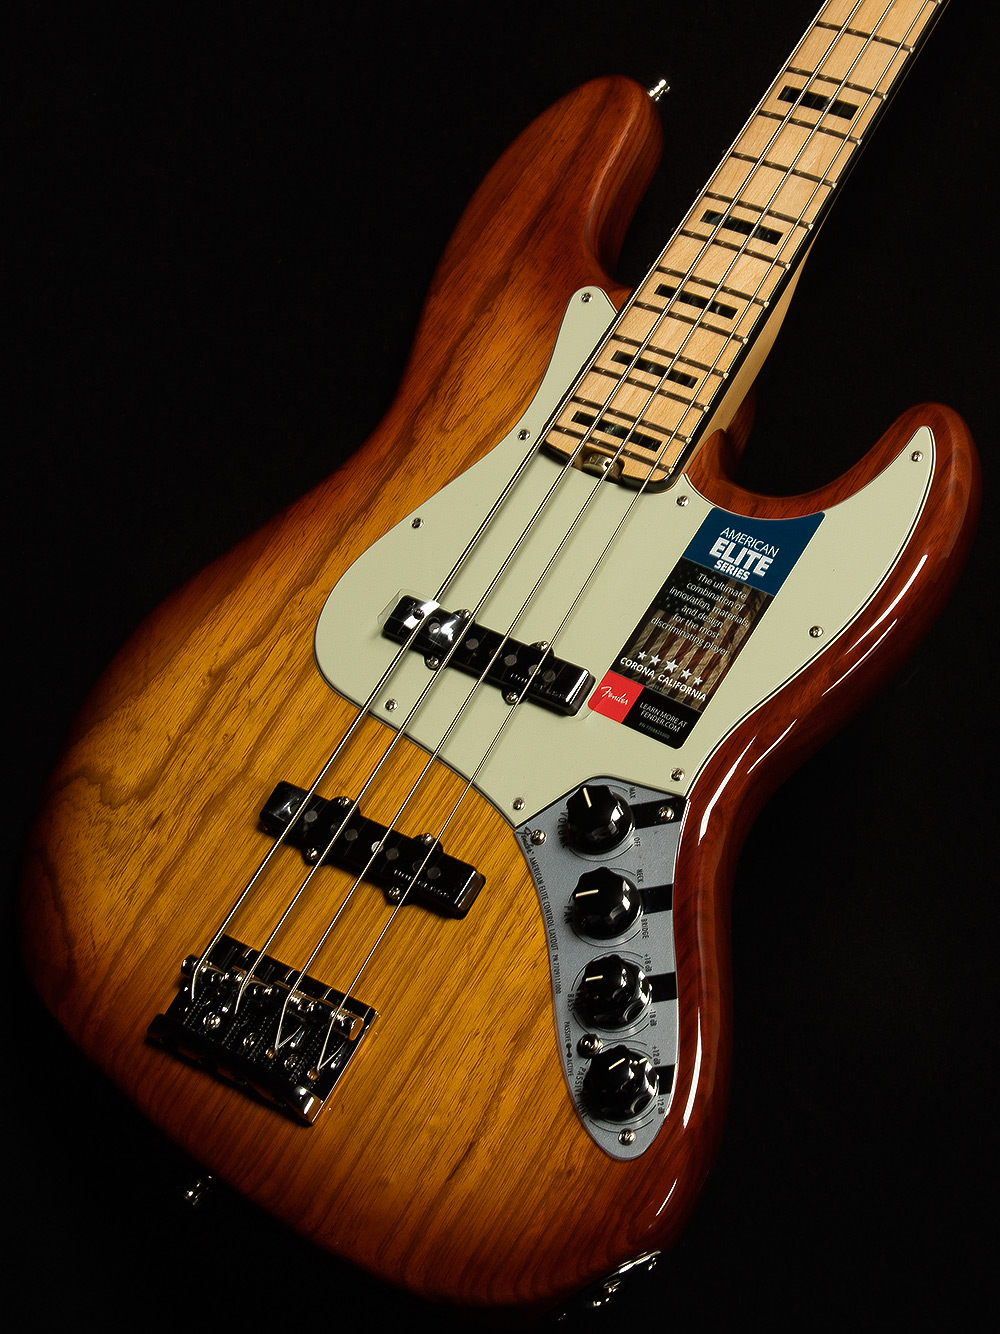 American Elite Jazz Bass : american elite jazz bass bass guitars american elite bass guitars wildwood guitars ~ Vivirlamusica.com Haus und Dekorationen